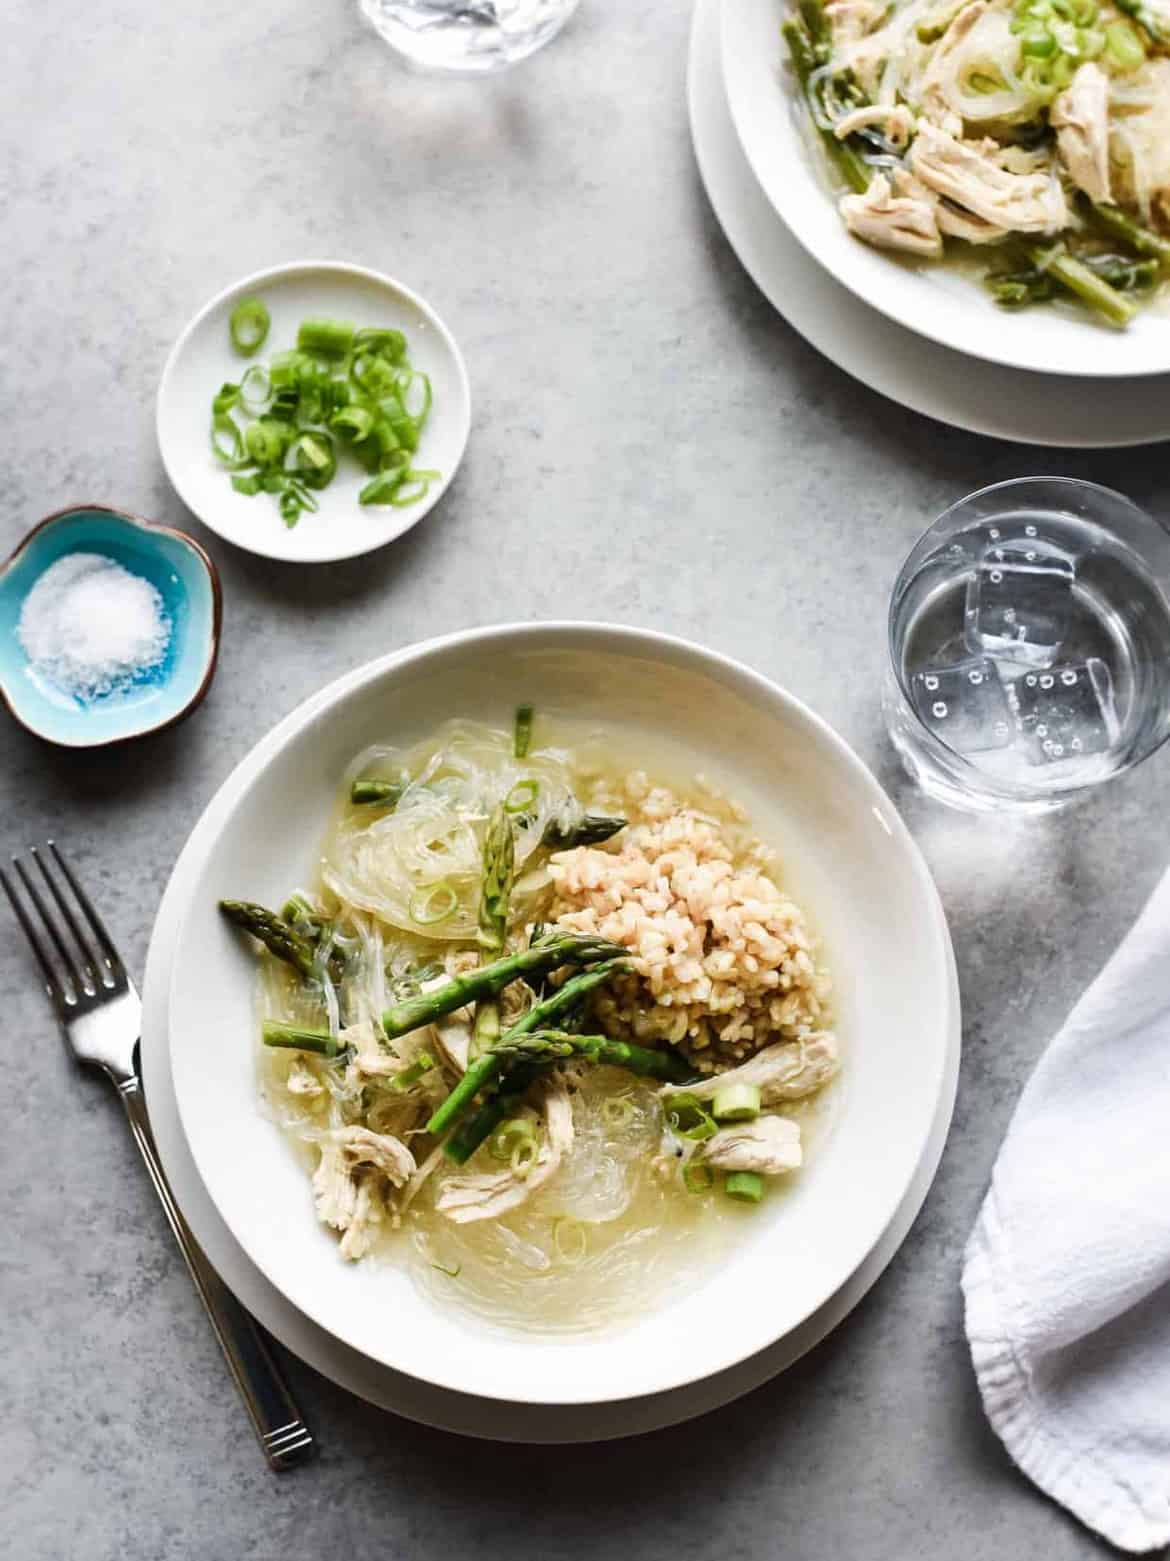 Chicken and Asparagus Sotanghon (Glass Noodle) Soup